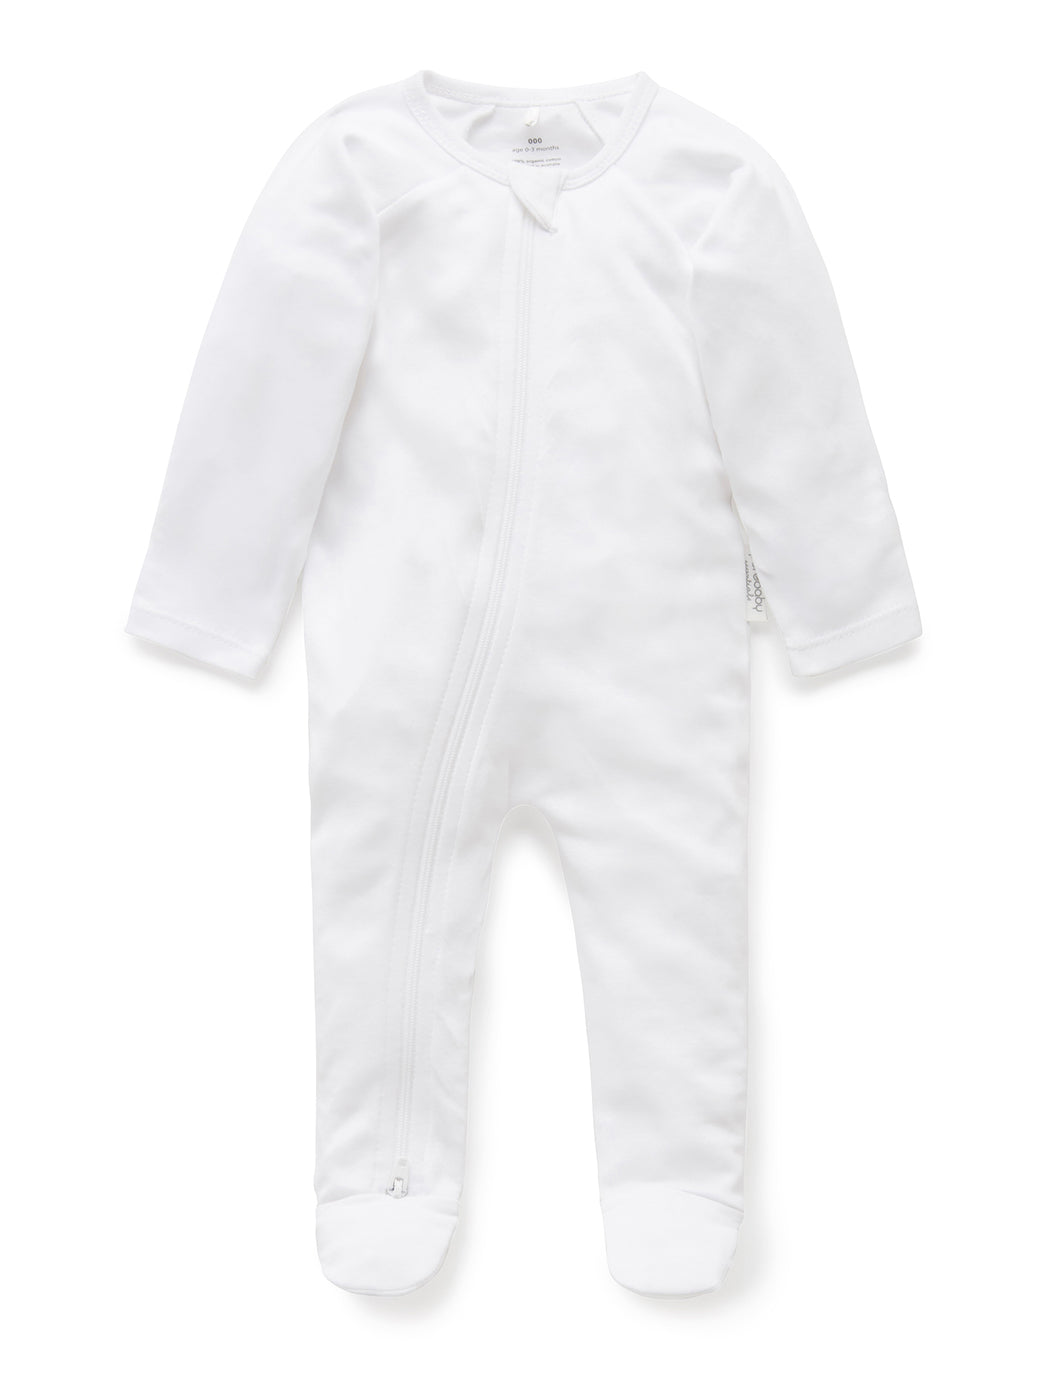 Pure Baby Zip Growsuit Premature Baby